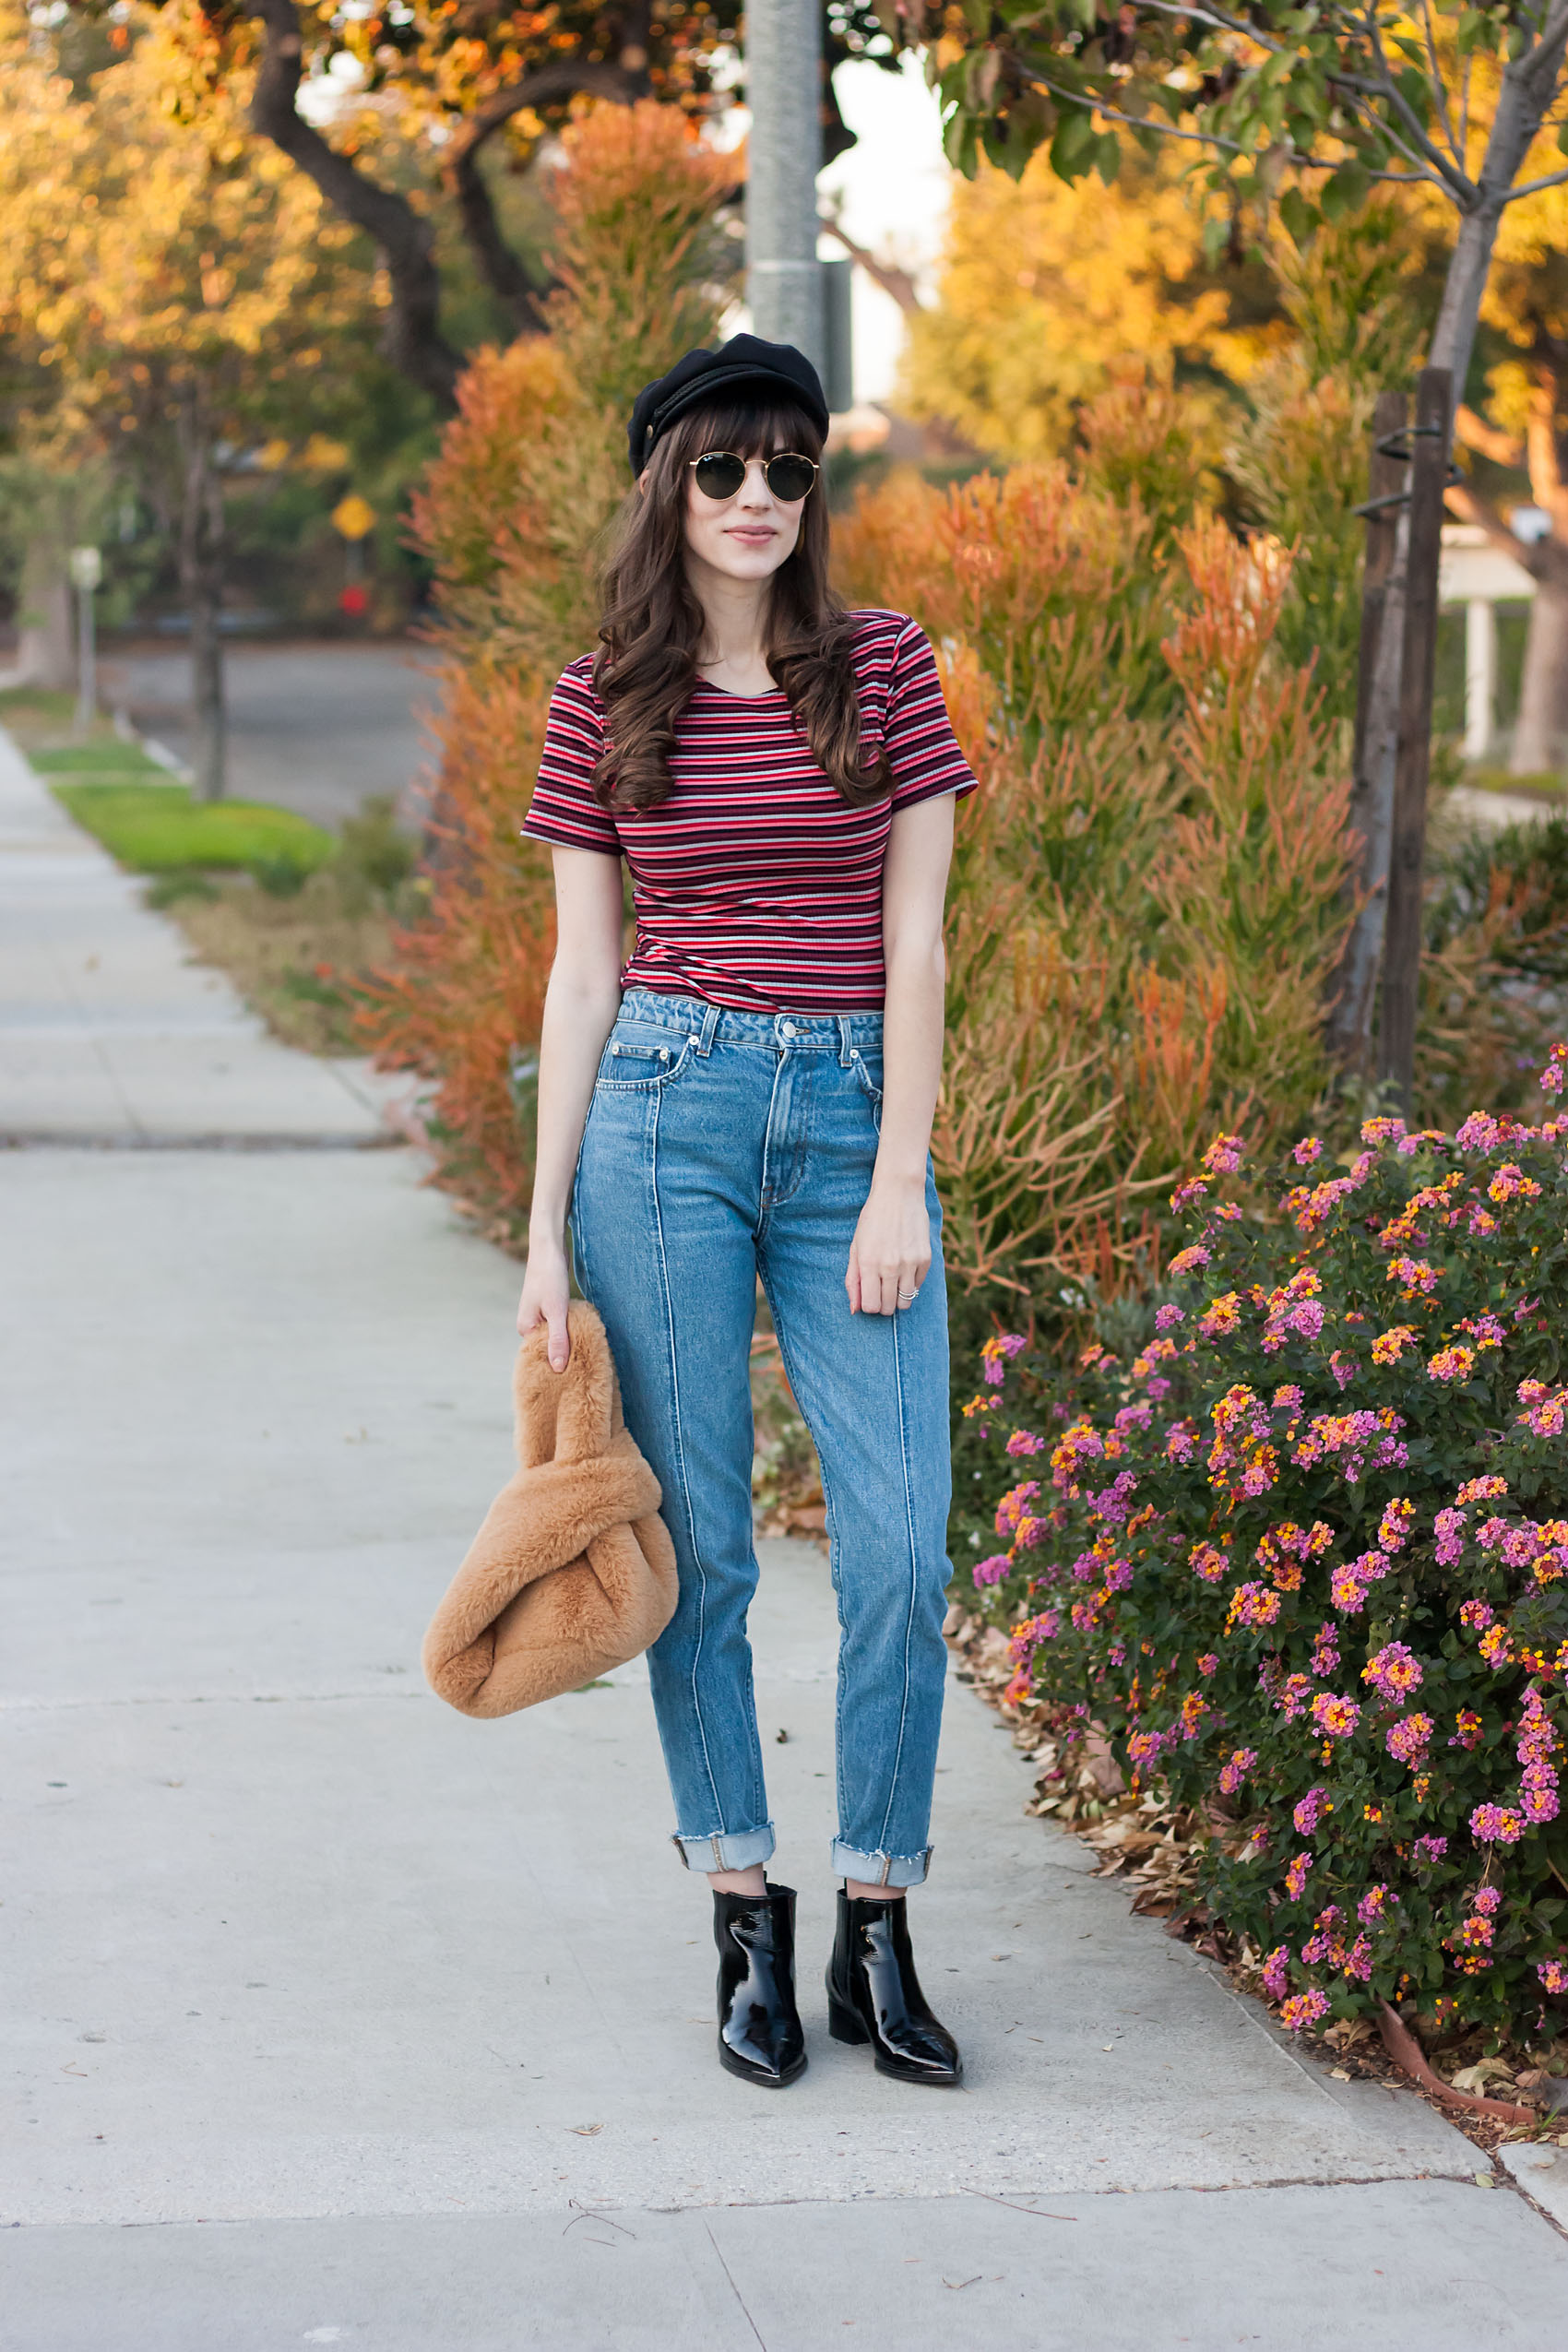 Los Angeles Style Blogger wearing Reformation, Free People bag, Baker Boy Hat and Marc Fisher Booties